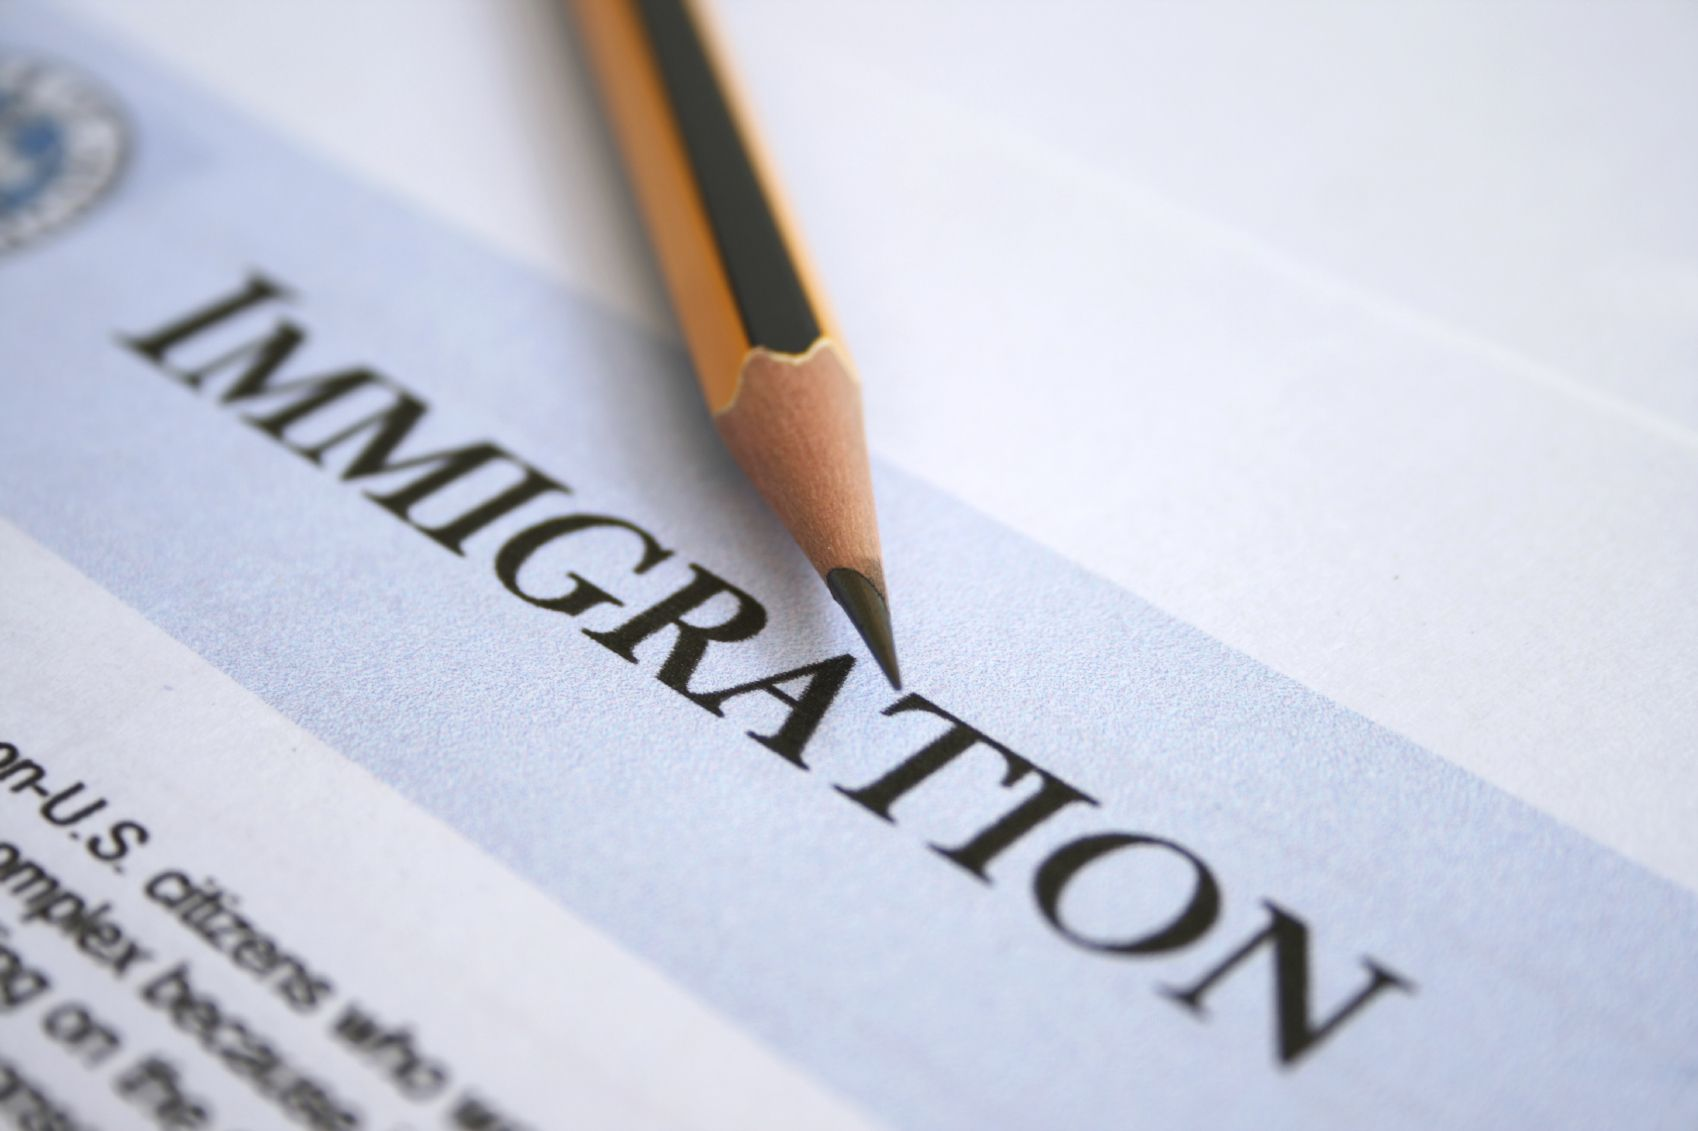 LEARN MORE ABOUT IMMIGRATION